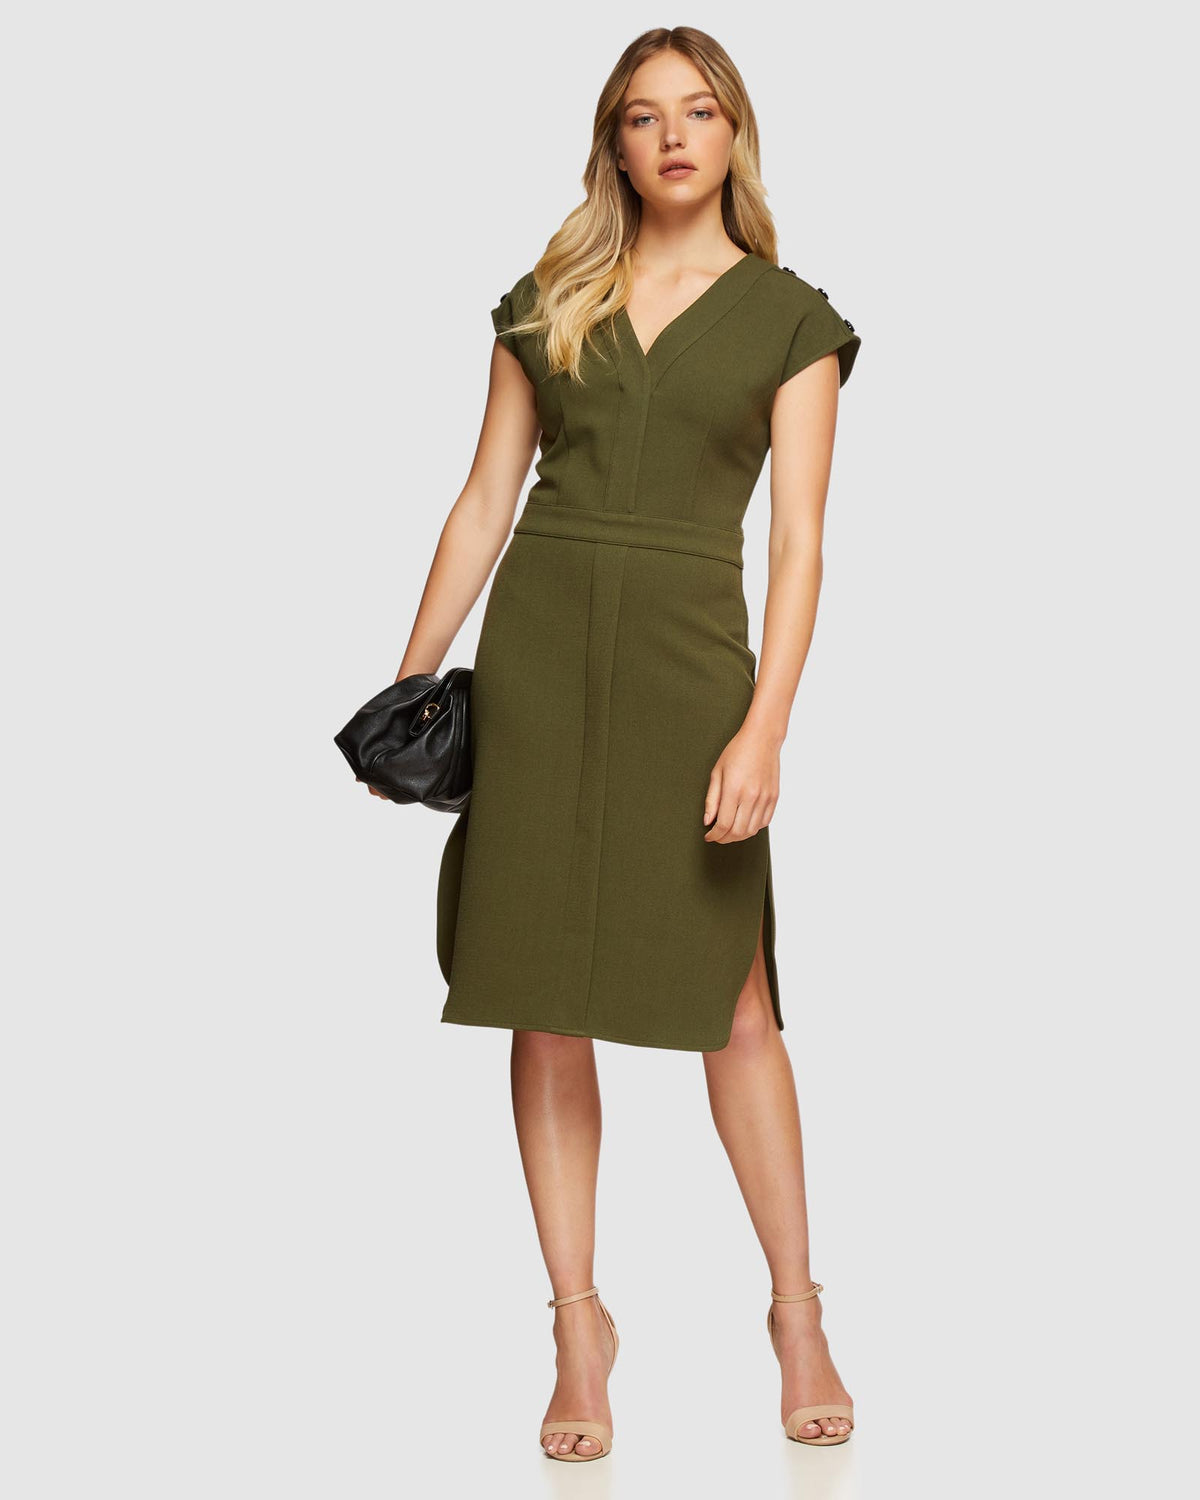 BERLIN STRETCH DRESS MILITARY